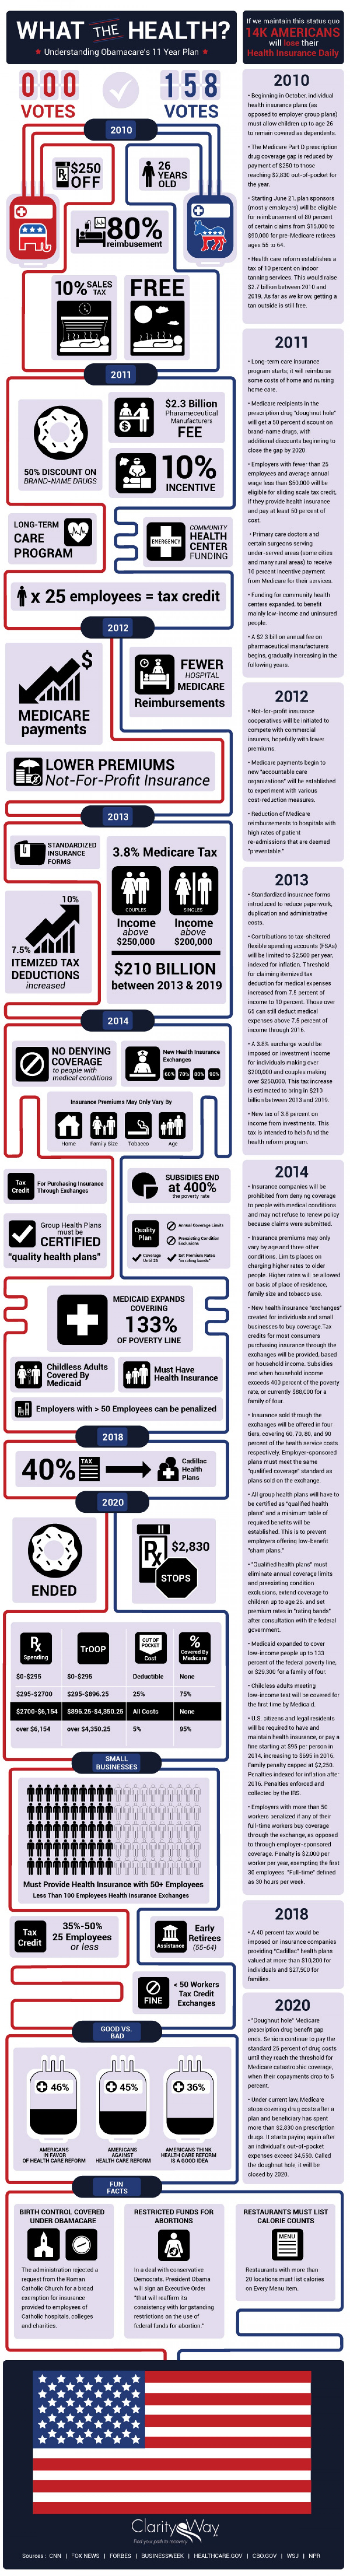 What the Health? Understanding Obama's 11 Year Plan for Health Reform